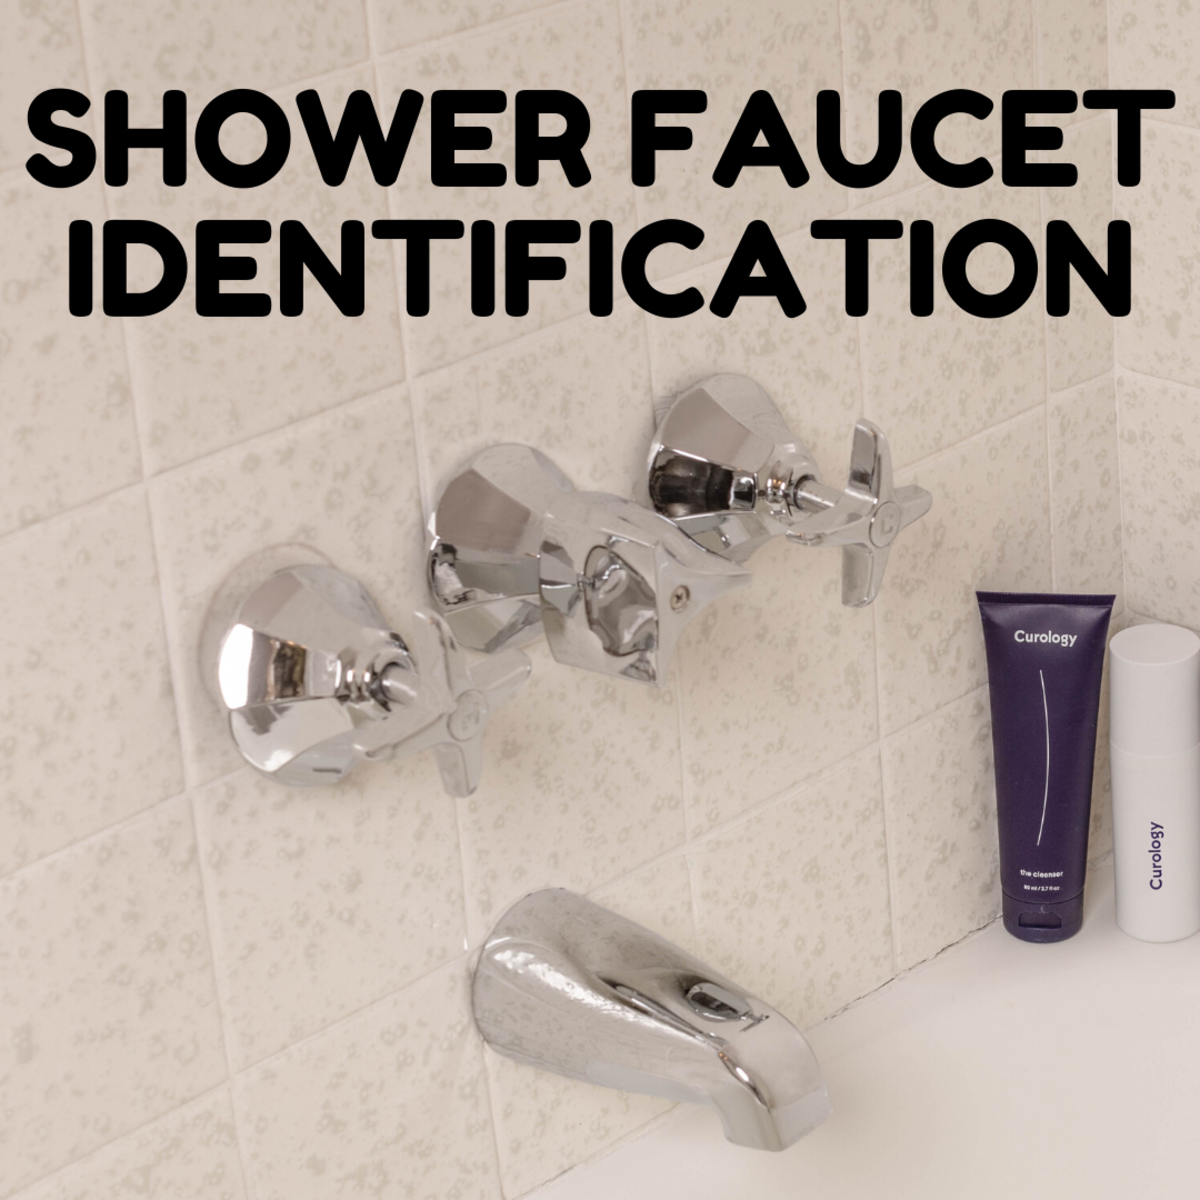 Identifying Your Shower Faucet Cartridge Type and Brand